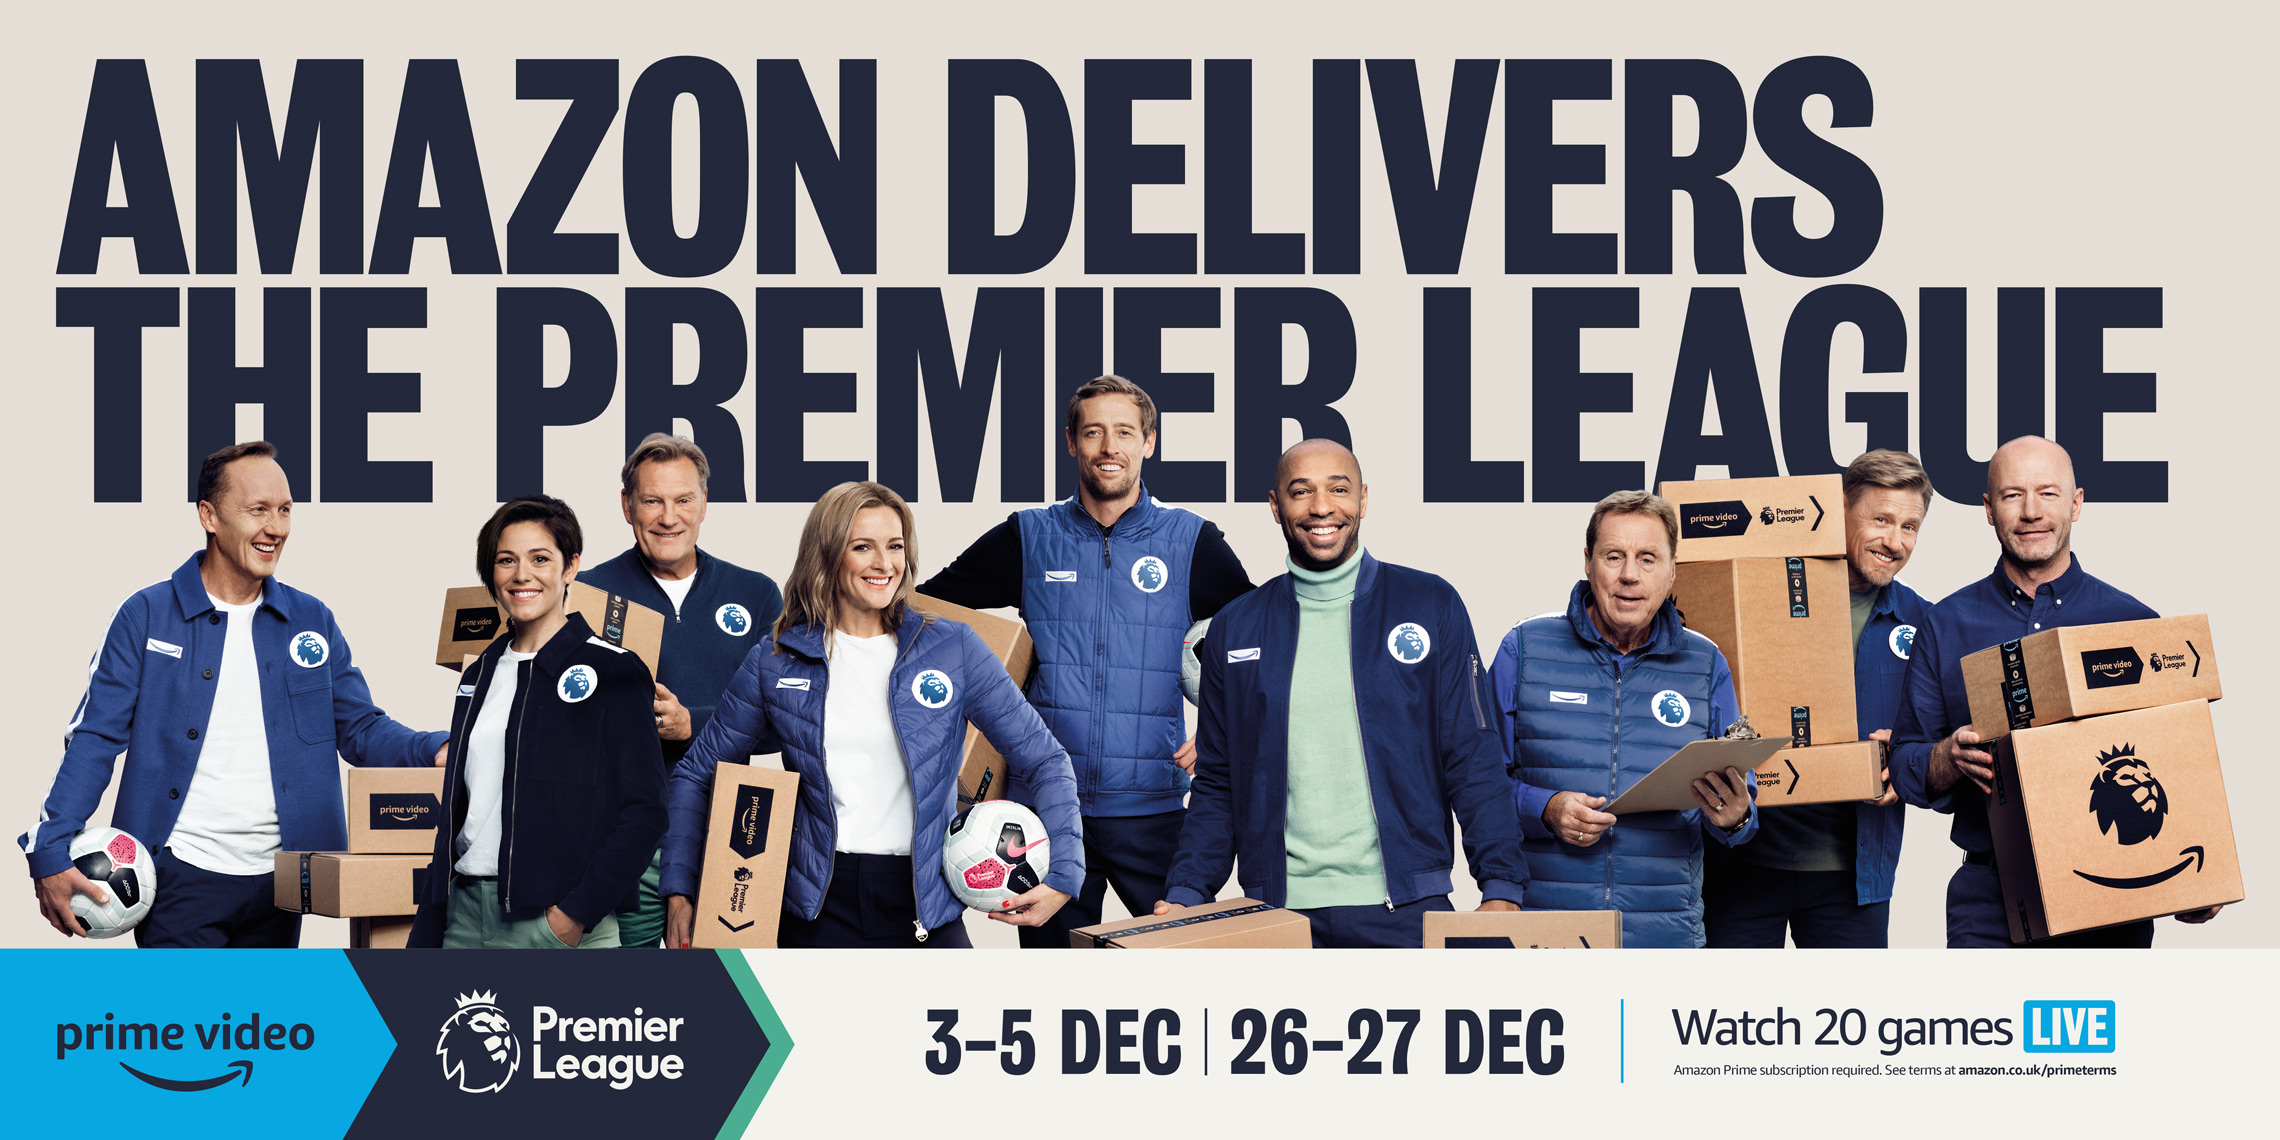 Amazon September premiership advertising 2019